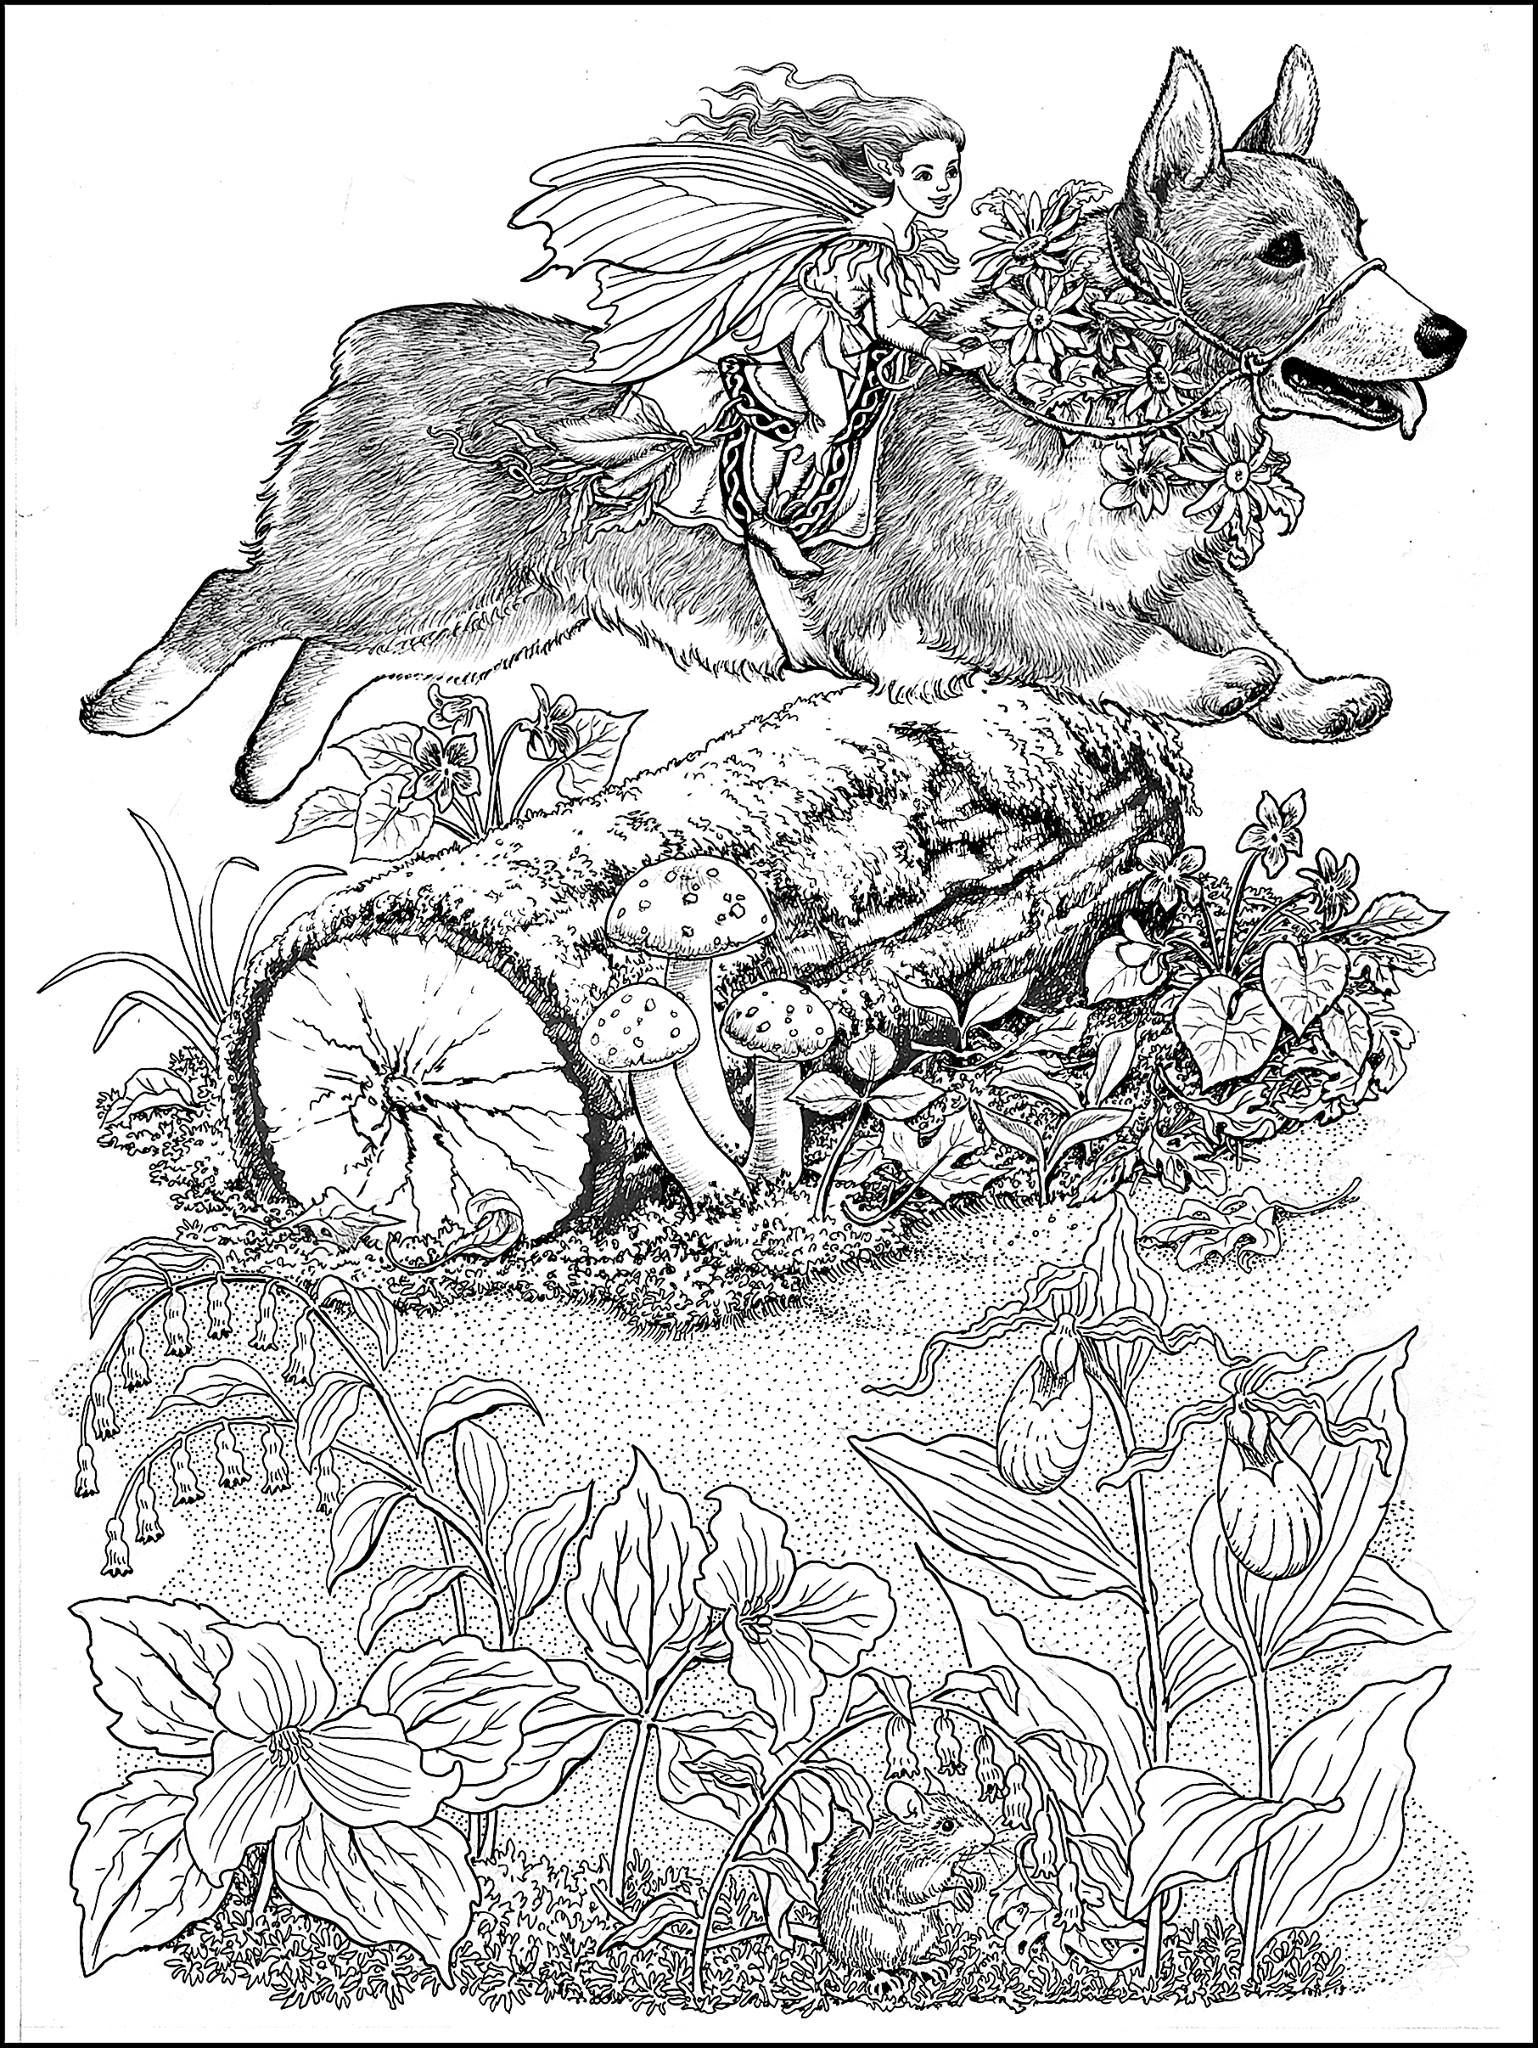 Corgi Fairy Steed from THE WORLD OF FAIRIES Coloring Book for ...